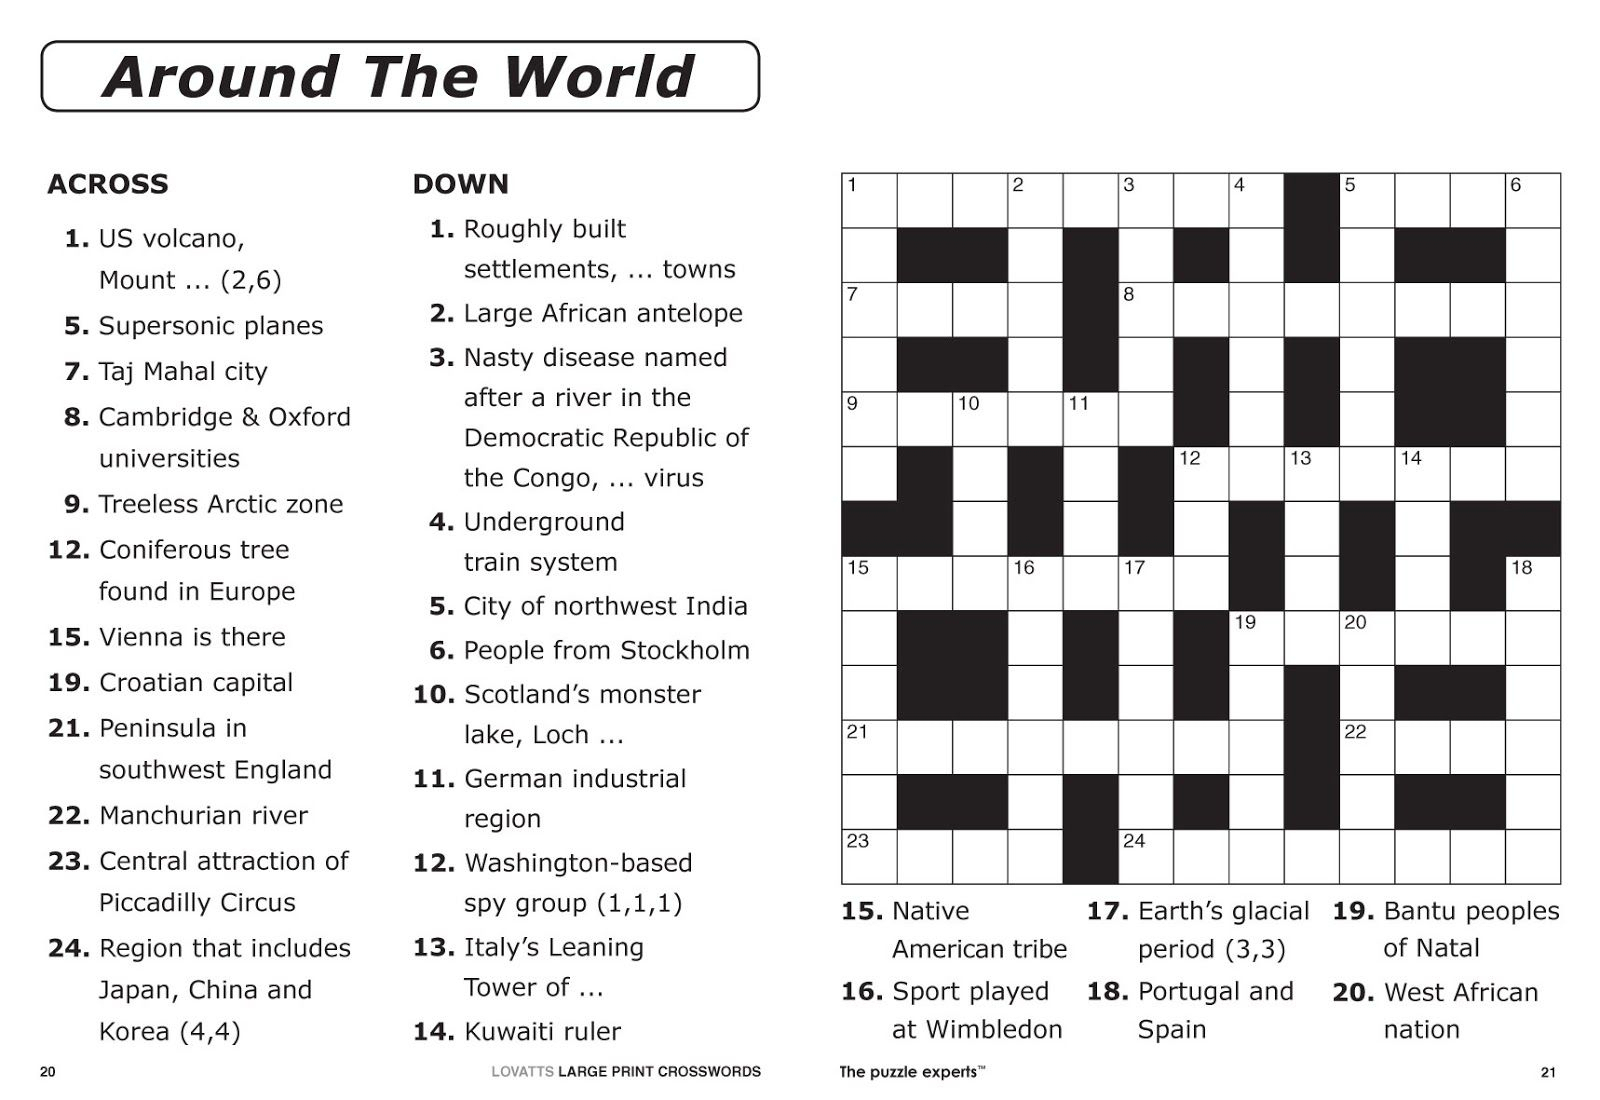 Free Printable Large Print Crossword Puzzles | M3U8 - Printable Crossword Puzzles For Senior Citizens